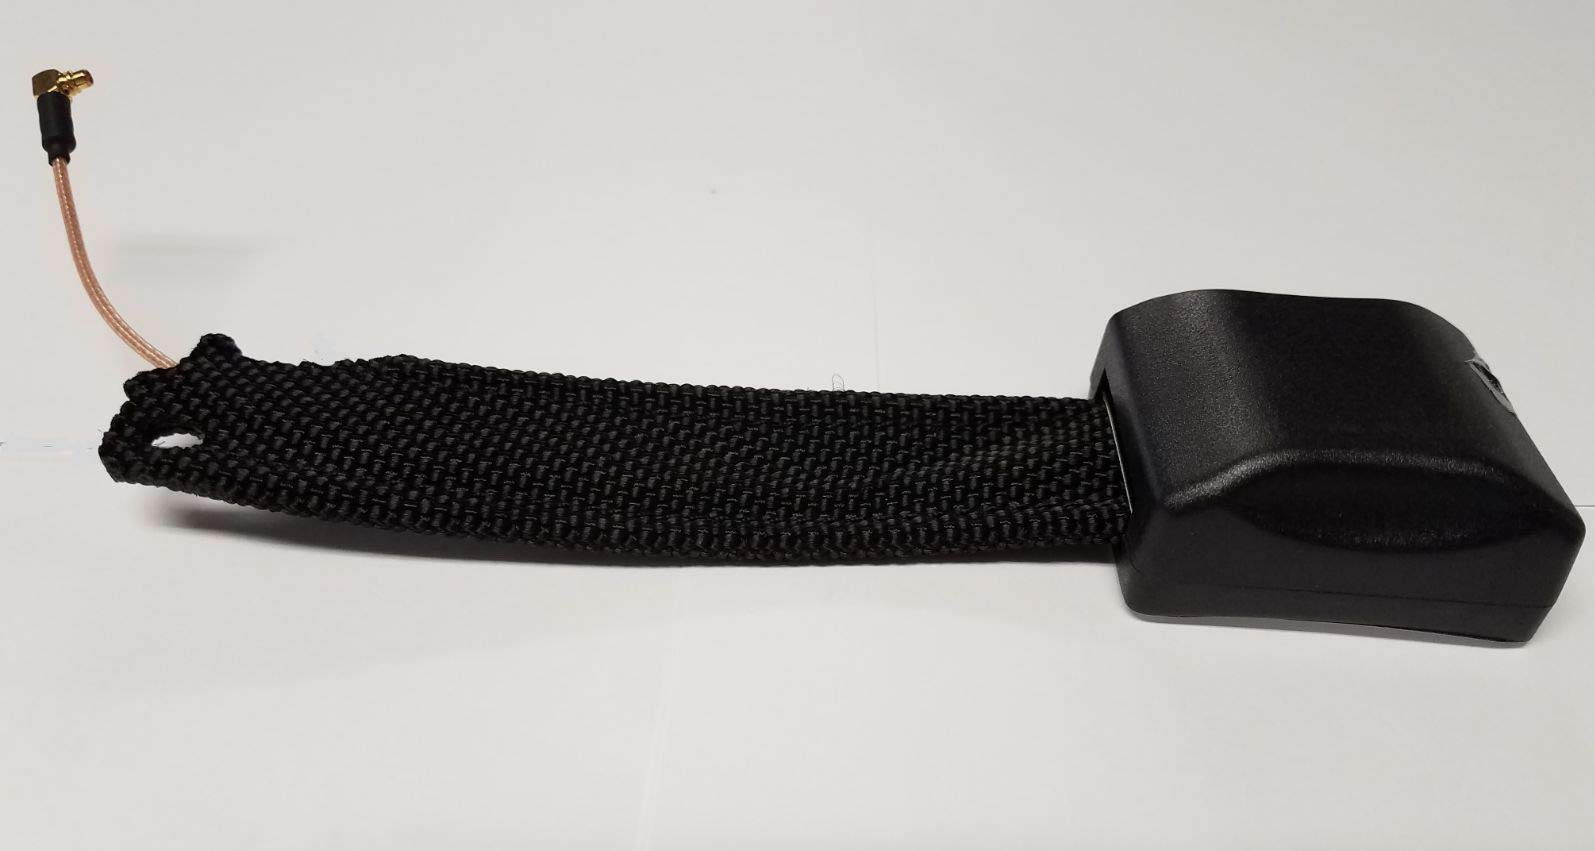 New GPS Collar Antenna for The Garmin DC50 by The Buzzard's Roost